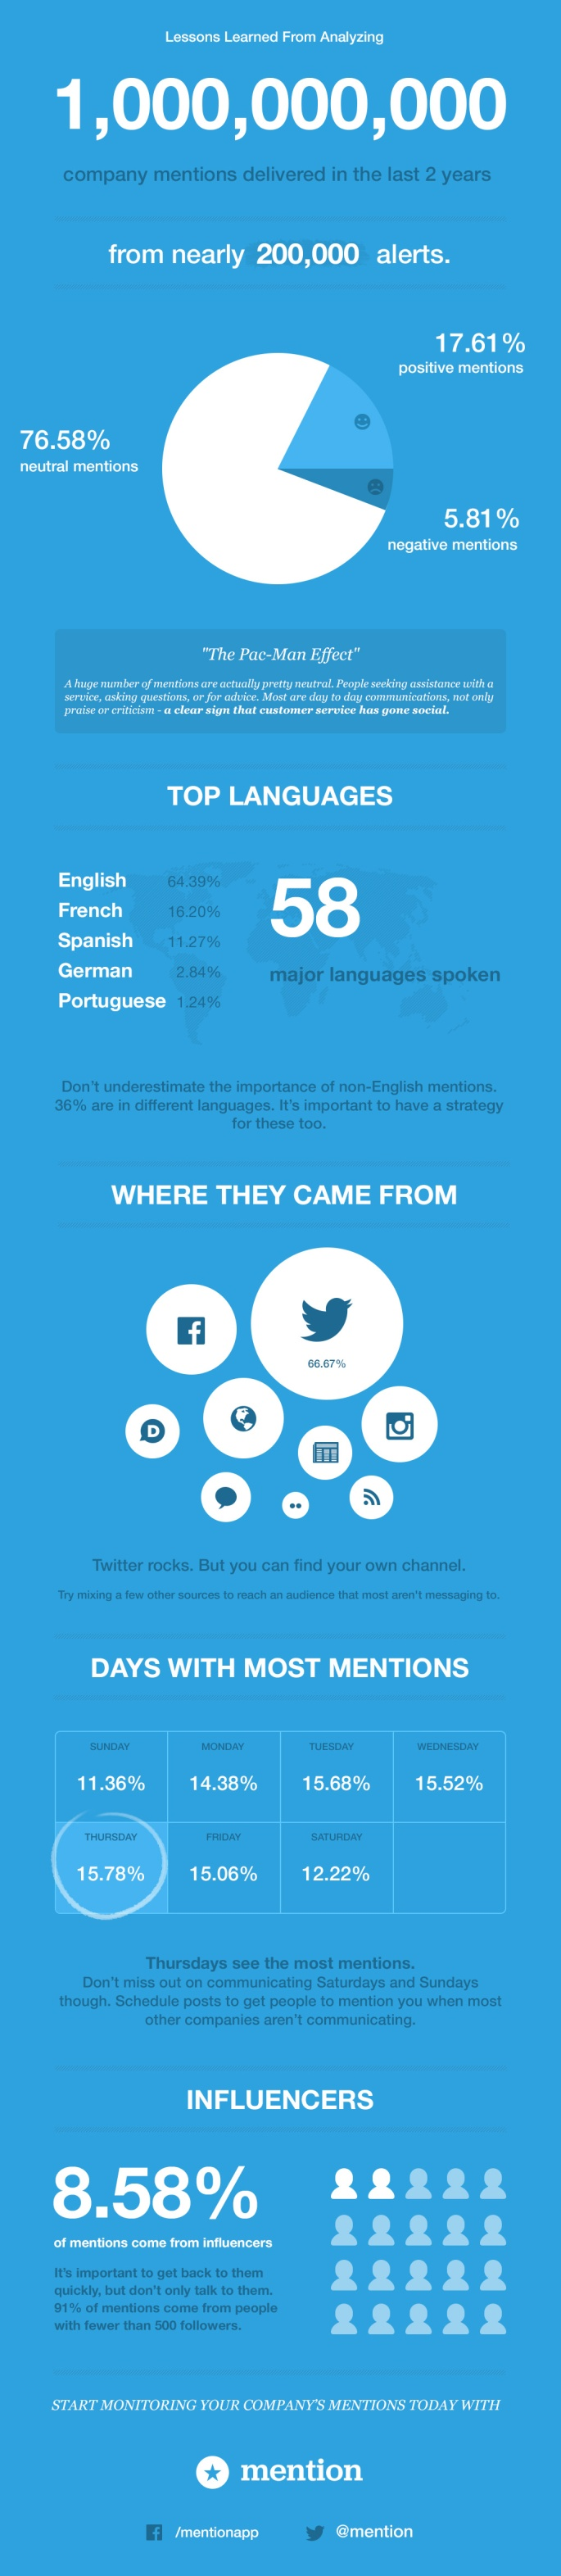 Key Online Marketing Insights from Analyzing 1 Billion Company Mentions [INFOGRAPHIC]